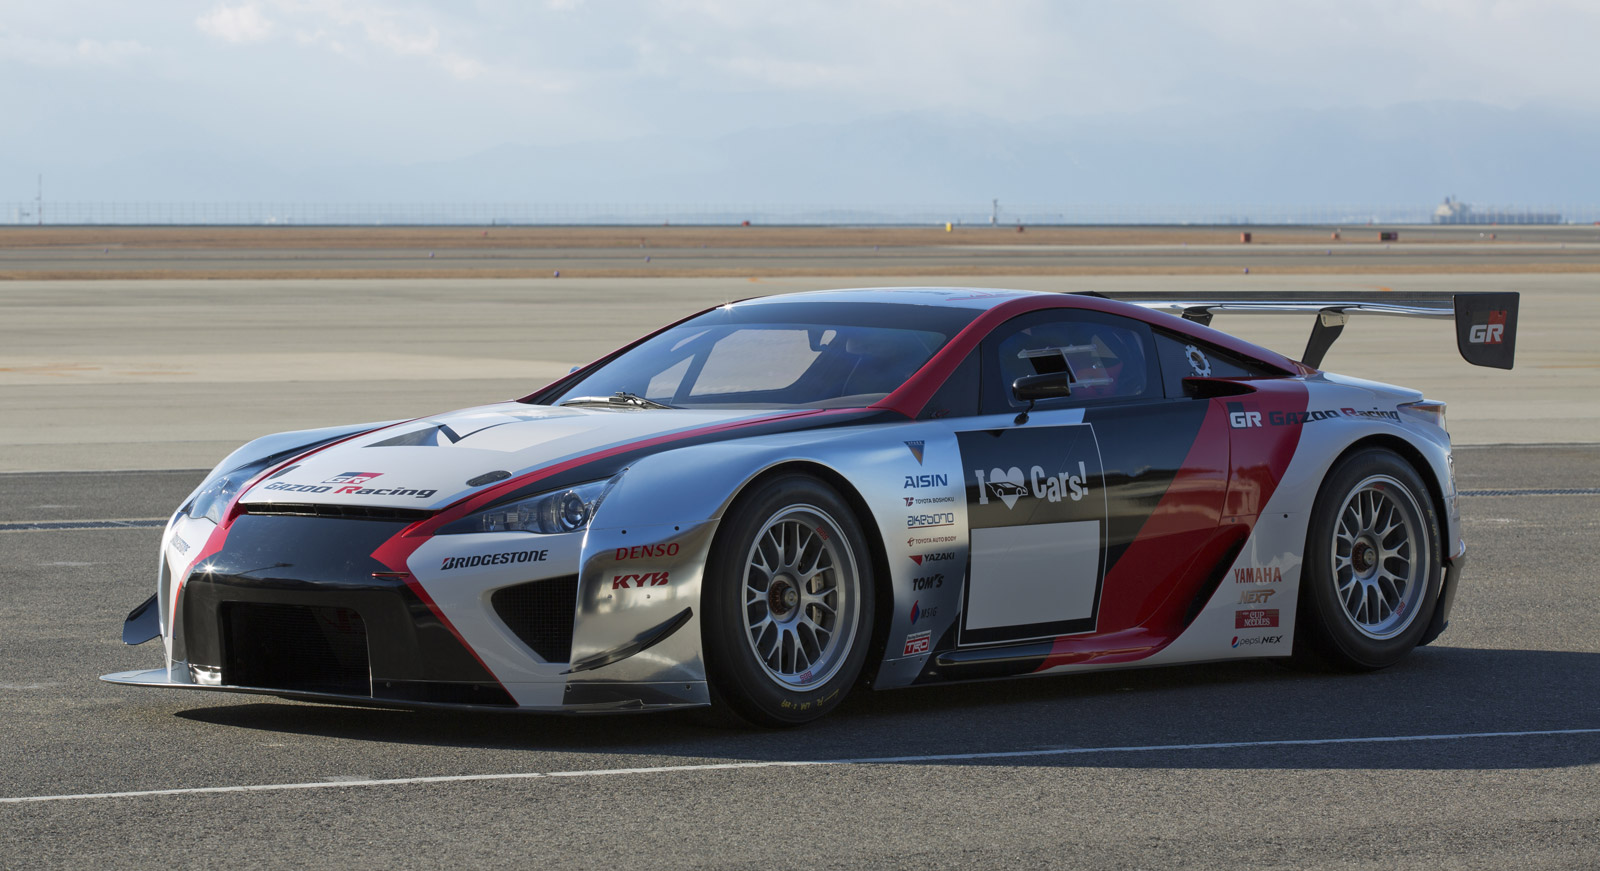 Lexus LFA And Toyota GT 86 Confirmed For 2013 Nürburgring 24 Hours Race